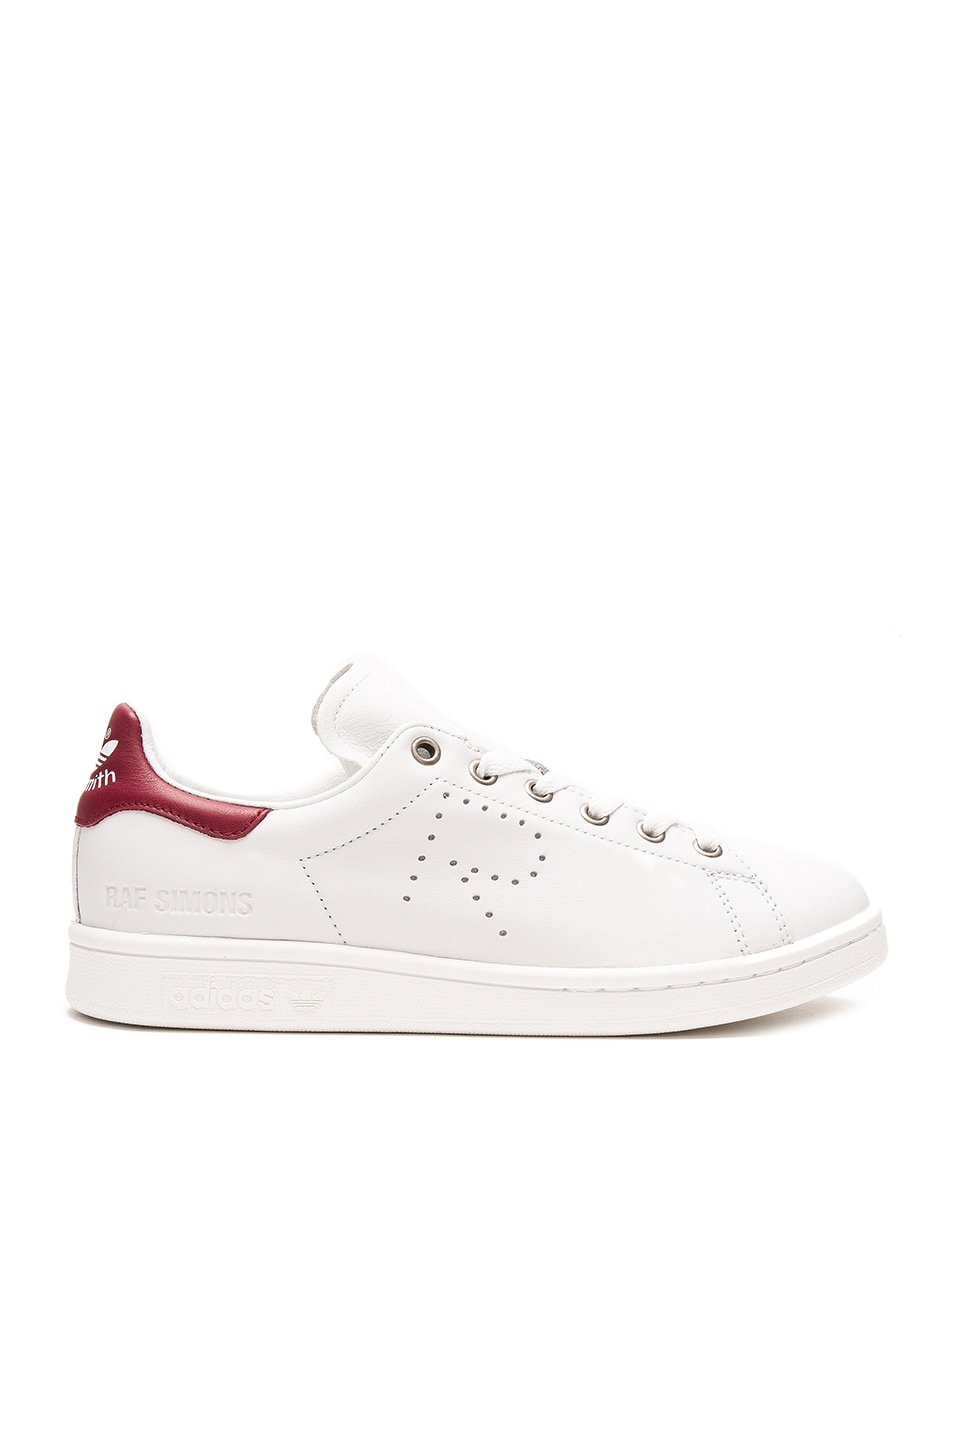 adidas by Raf Simons Stan Smith Sneaker in Vintage White & Collegiate Burgundy